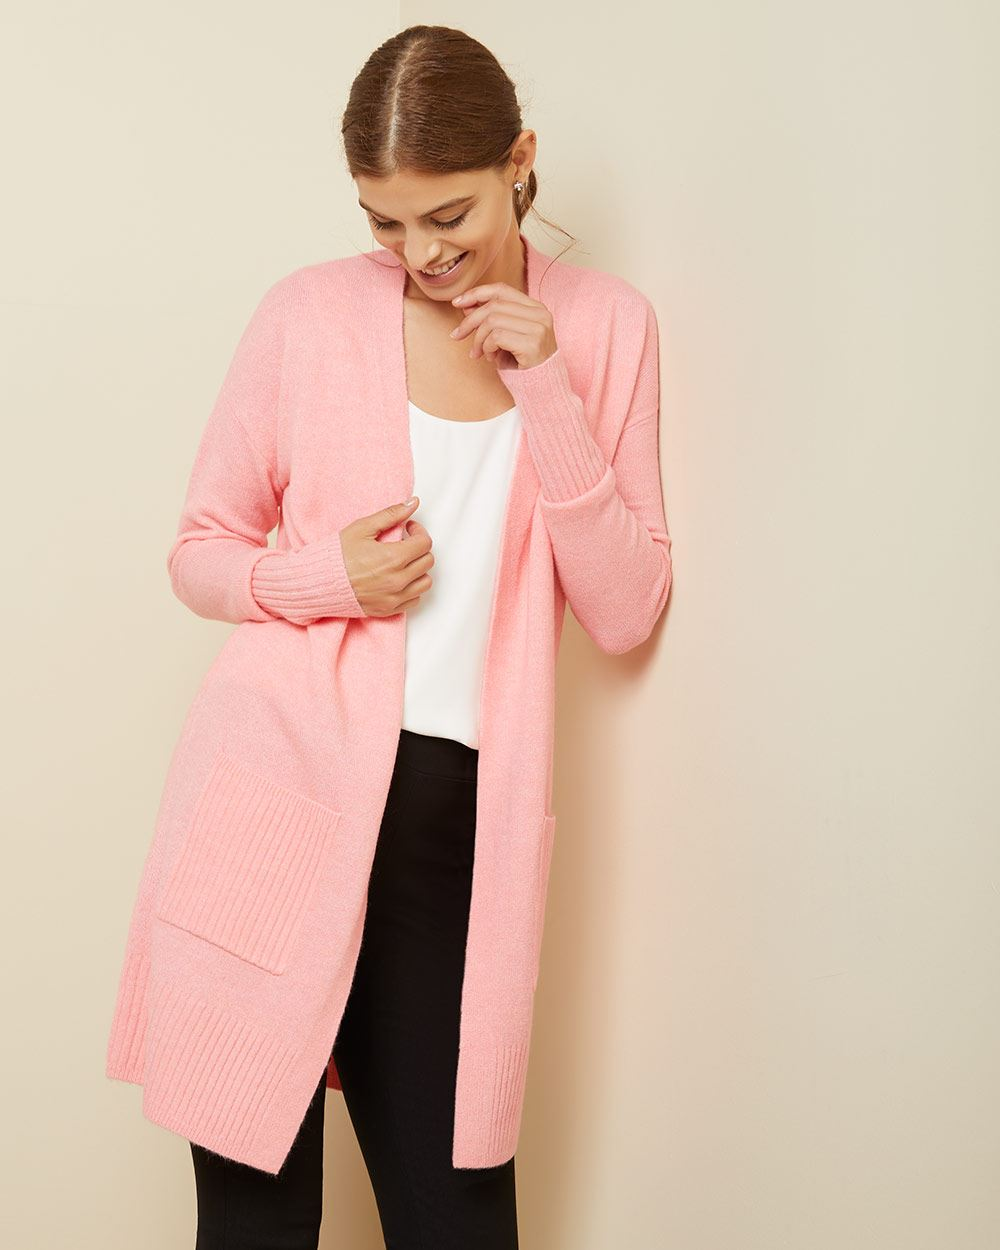 Spongy Knit Open-front Cardigan with pockets